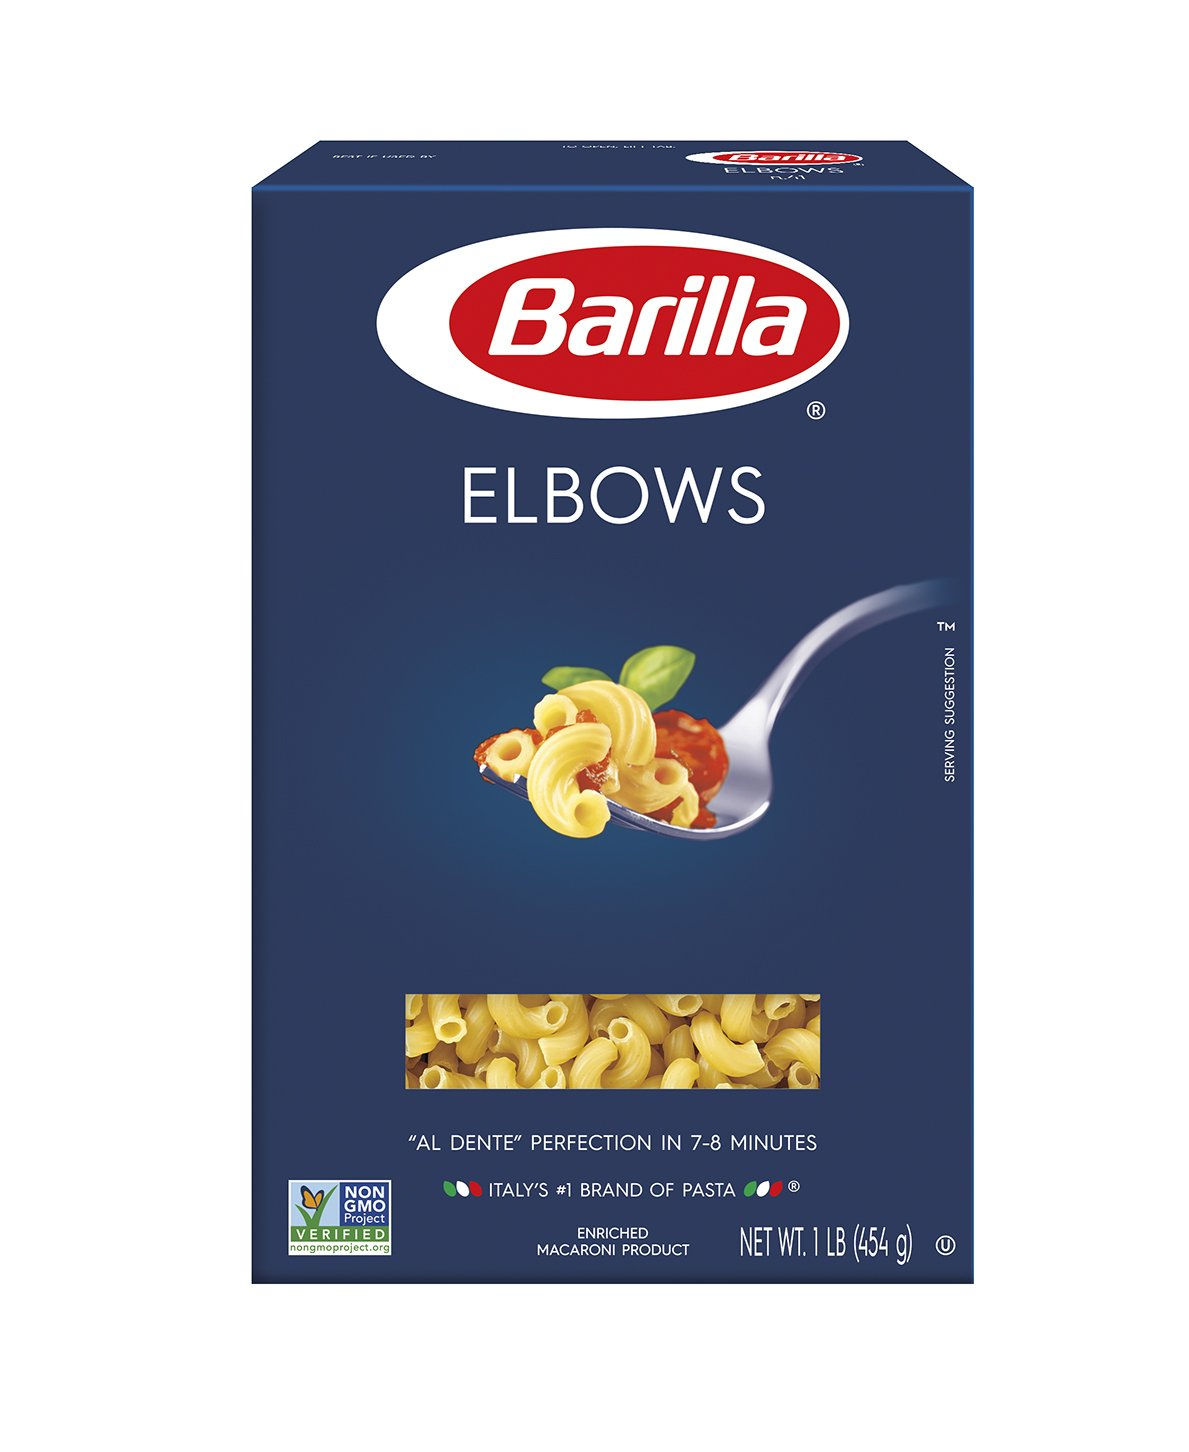 Pack of 8 Barilla Pasta, Elbows only $6.80 with coupon!